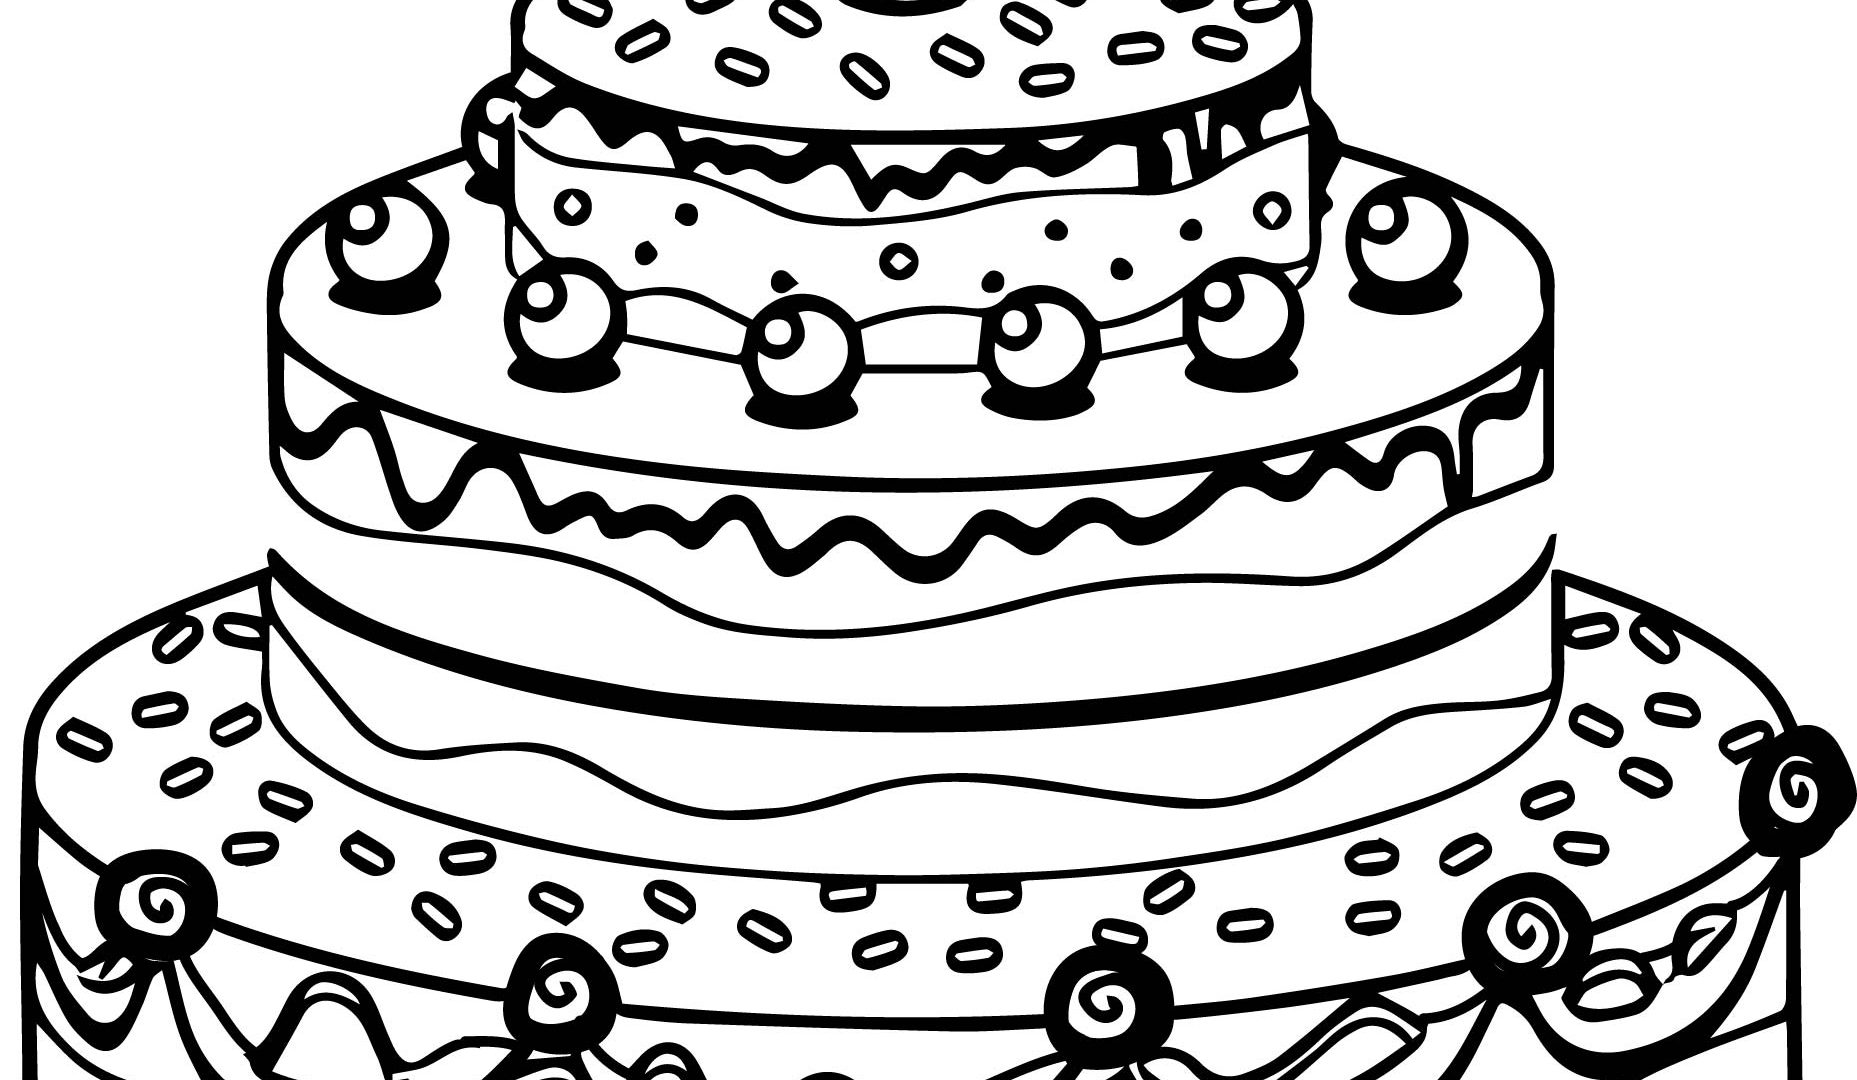 birthday cake coloring pages preschool ; cute-birthday-cake-coloring-page-1857x1080